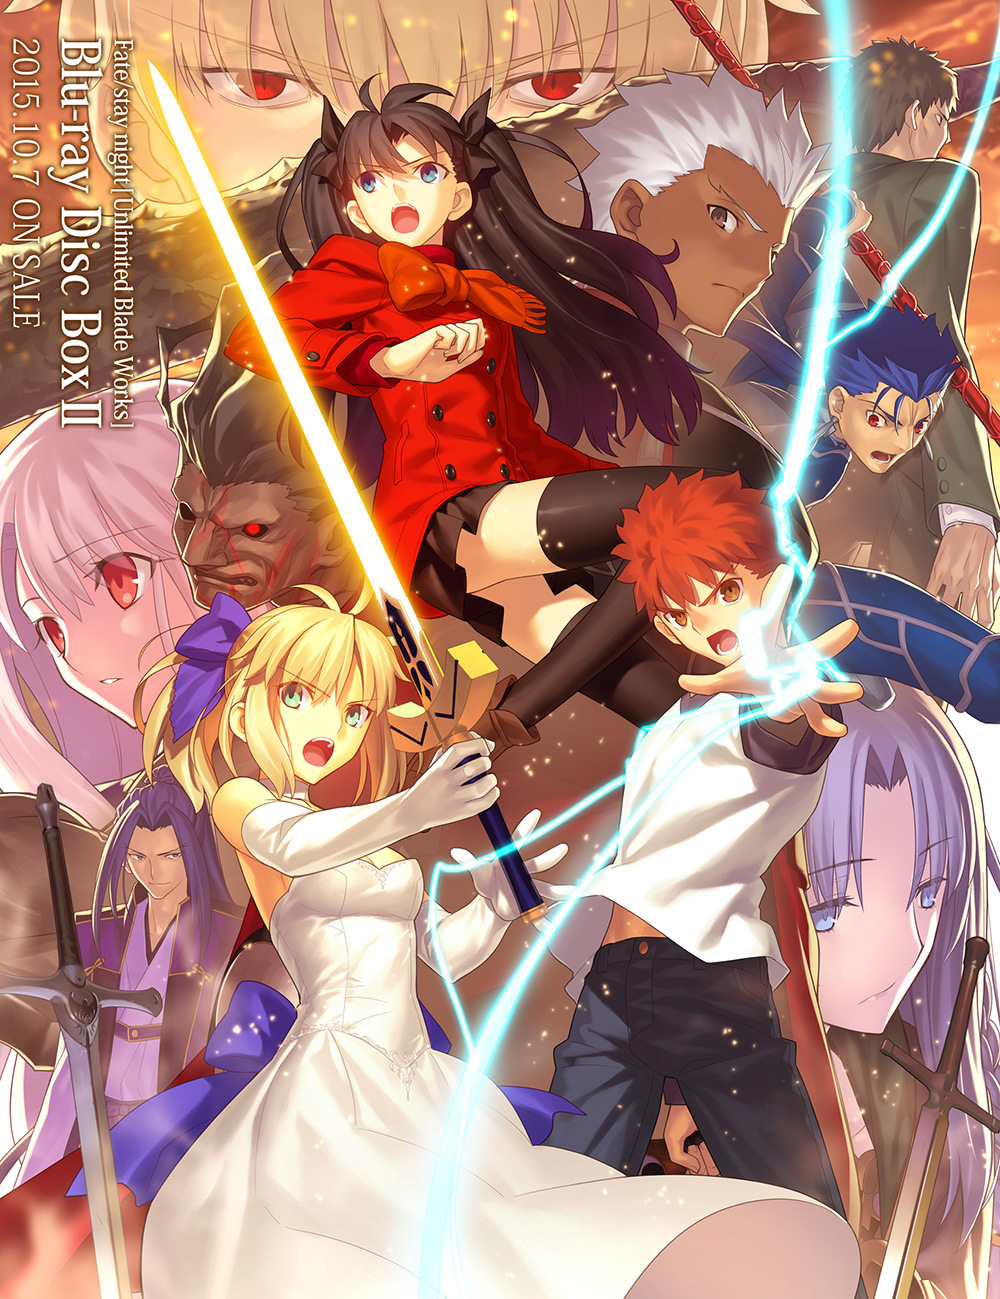 Fate-stay-night-Unlimited-Blade-Works-Blu-ray-Box-2-Visual